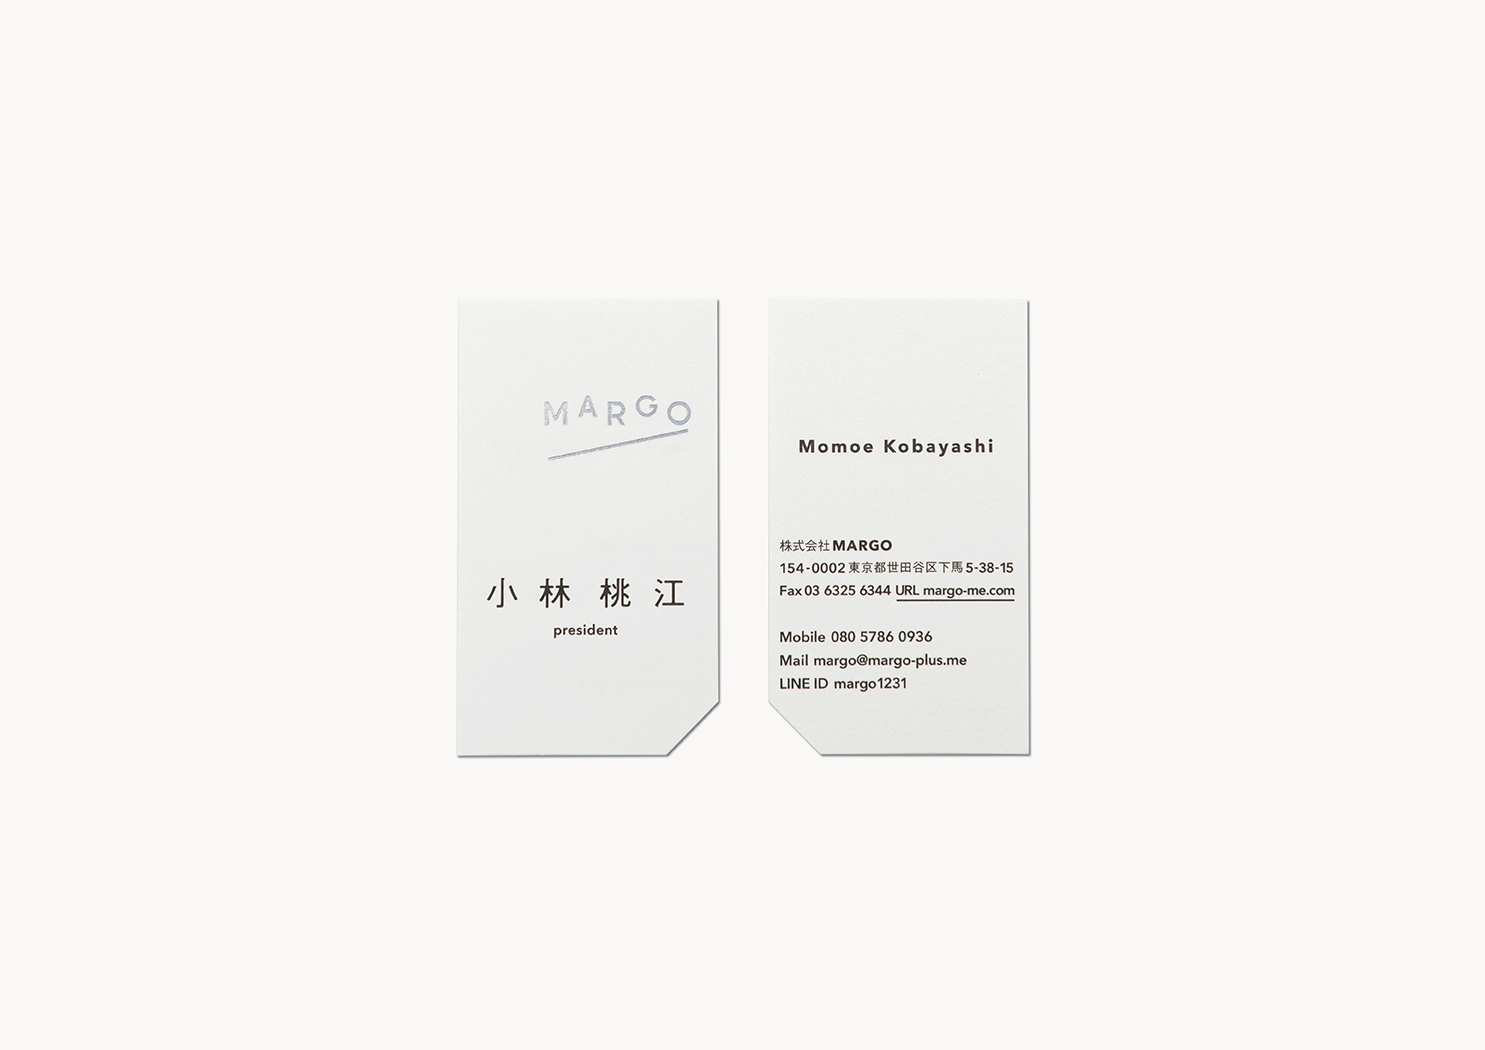 MARGO Business card